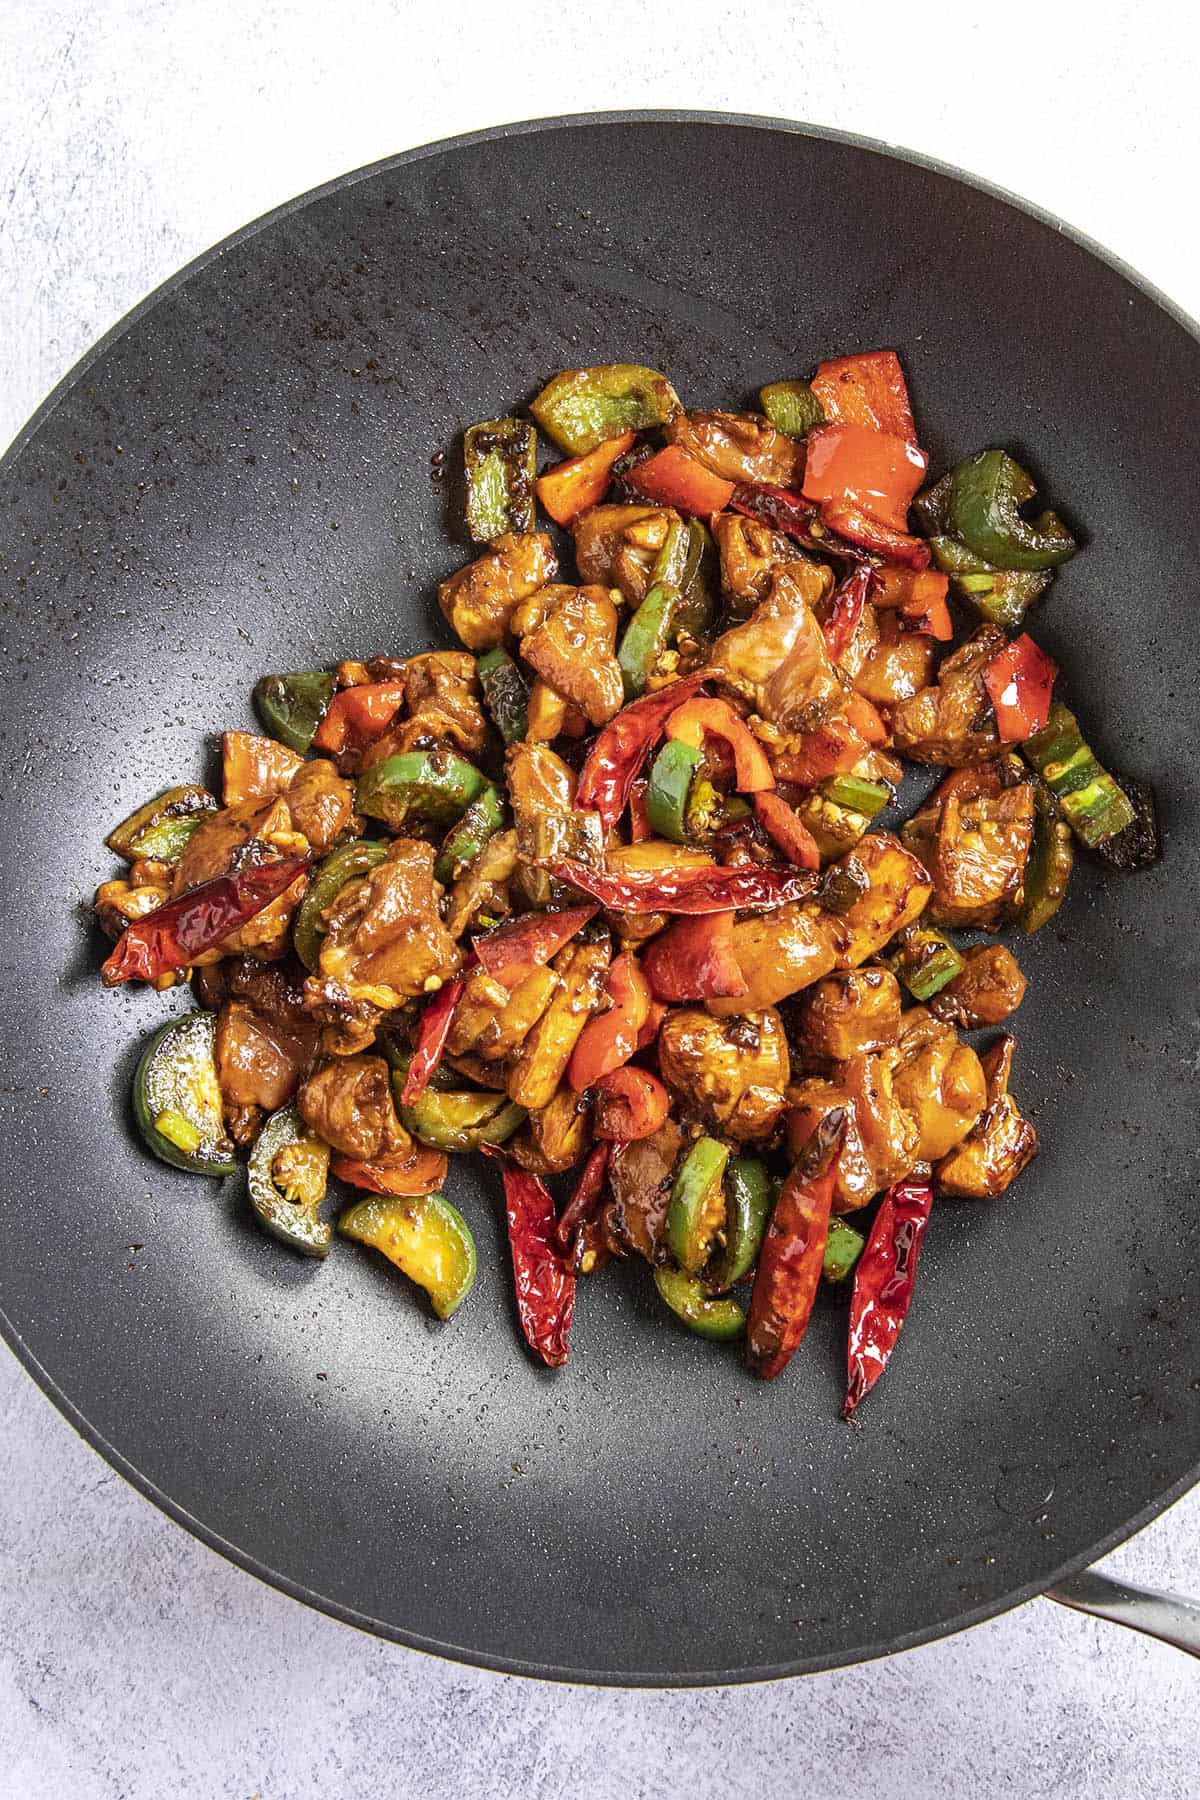 Chicken and vegetables in a hot pan